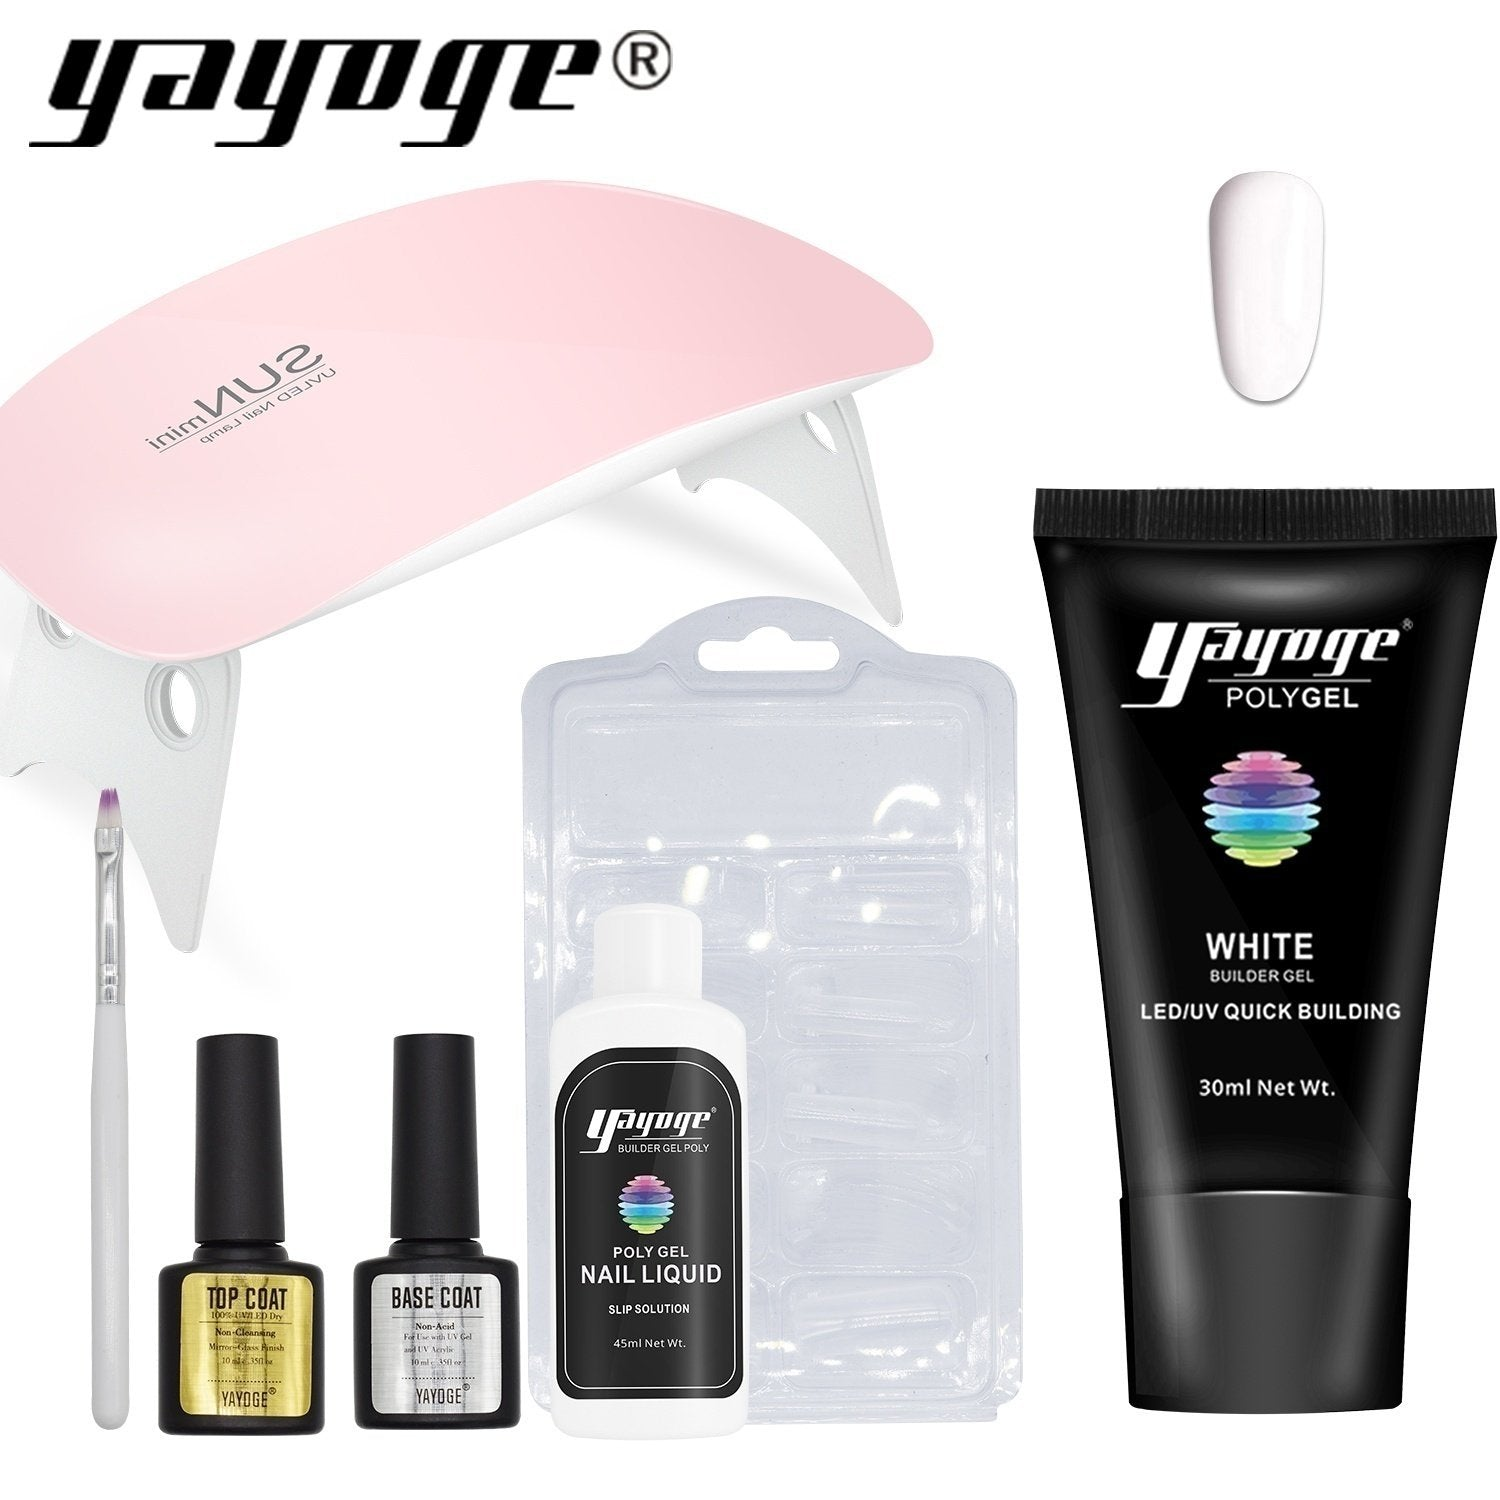 US WAREHOUSE YAYOGE 7Pcs/Set PolyGel Set Quick Builder Gel Nail Extension LED Lamp Kit - YAYOGE Official